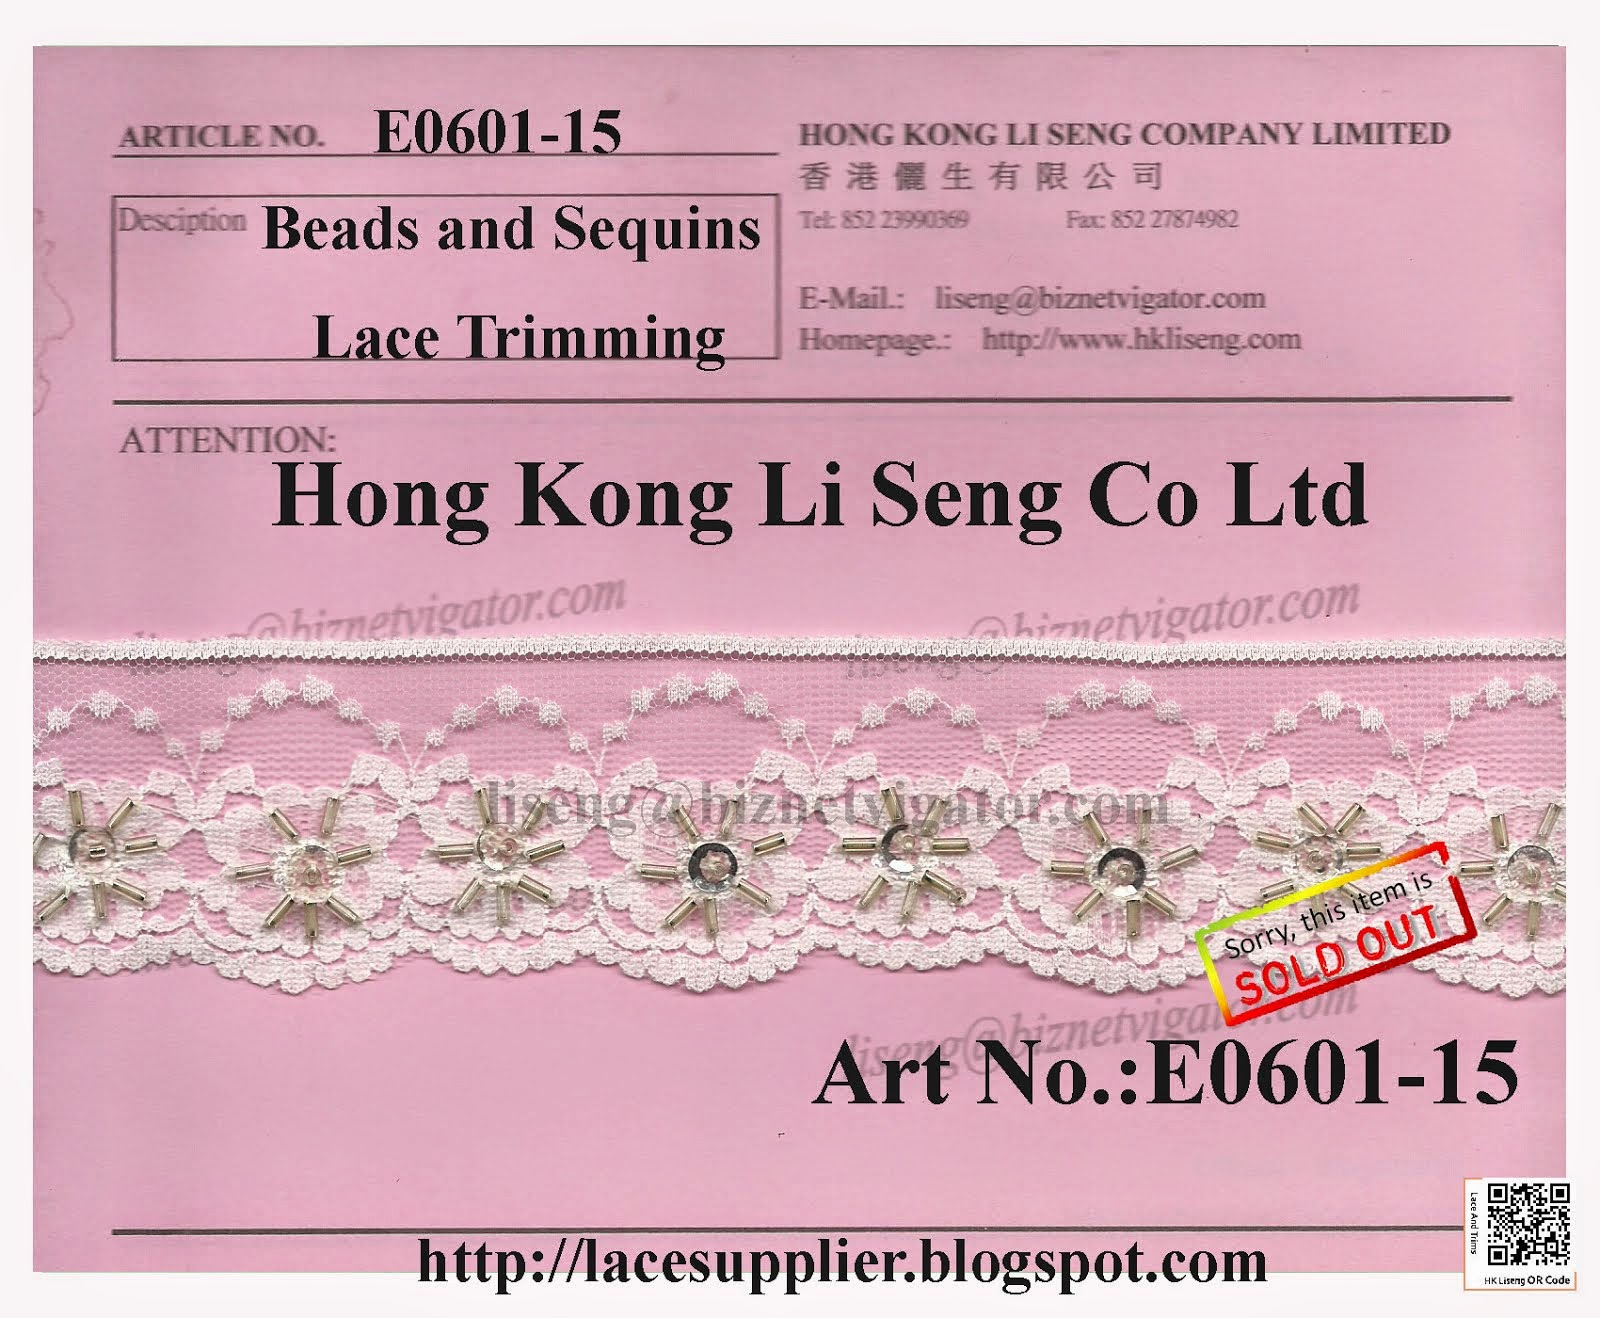 Beads and Sequins Lace Trimming Factory - Hong Kong Li Seng Co Ltd